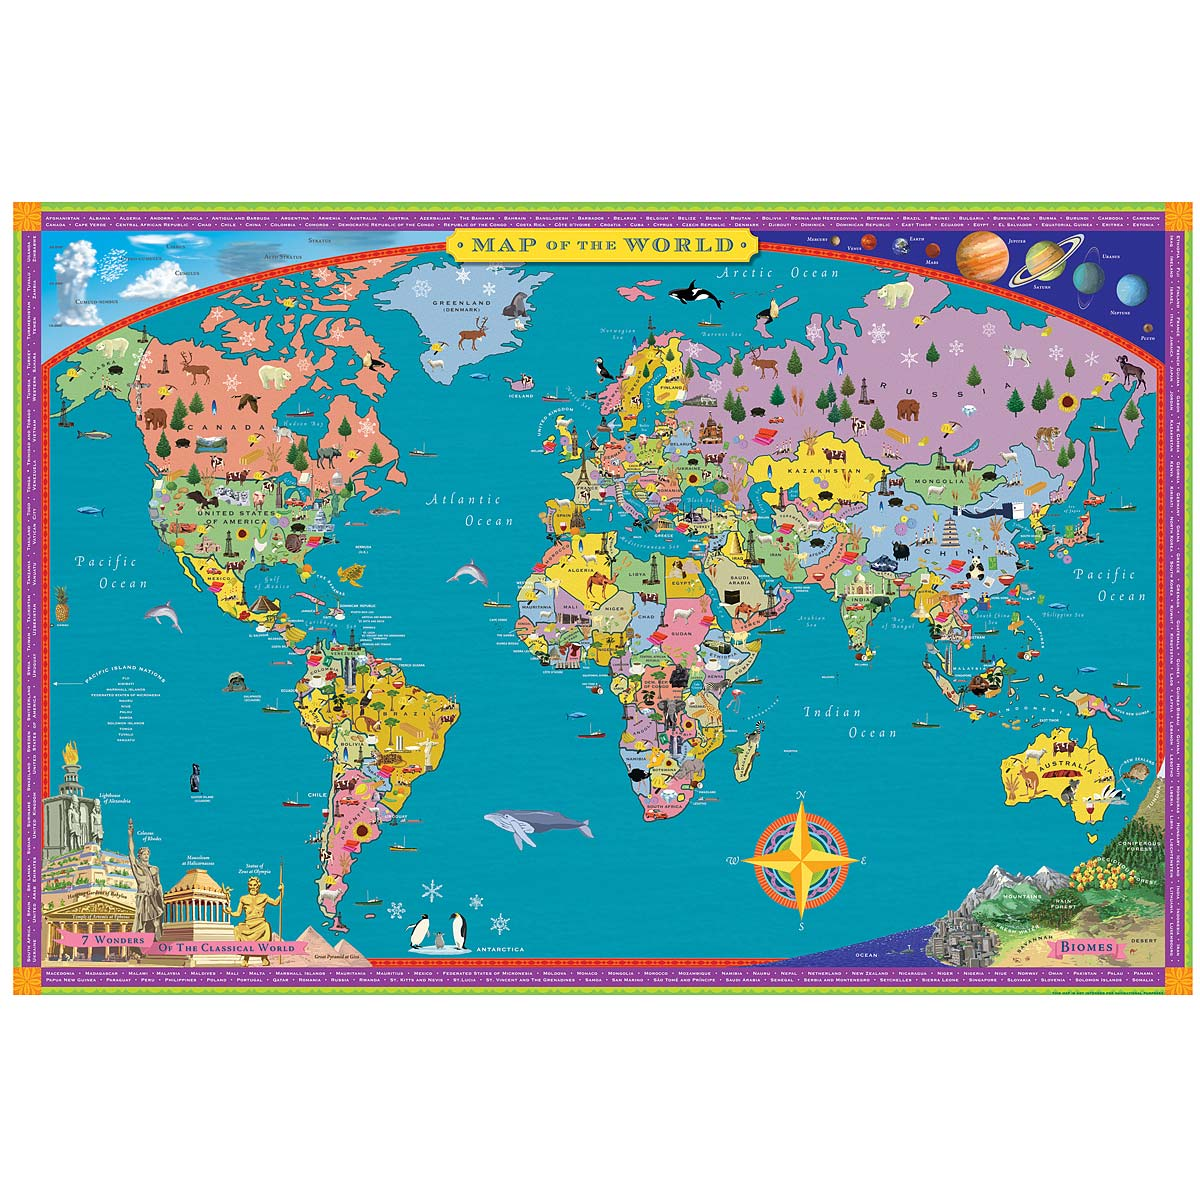 Map Puzzles Learn US And World Geography Online Map Puzzles Learn - Owl and mouse us map puzzle